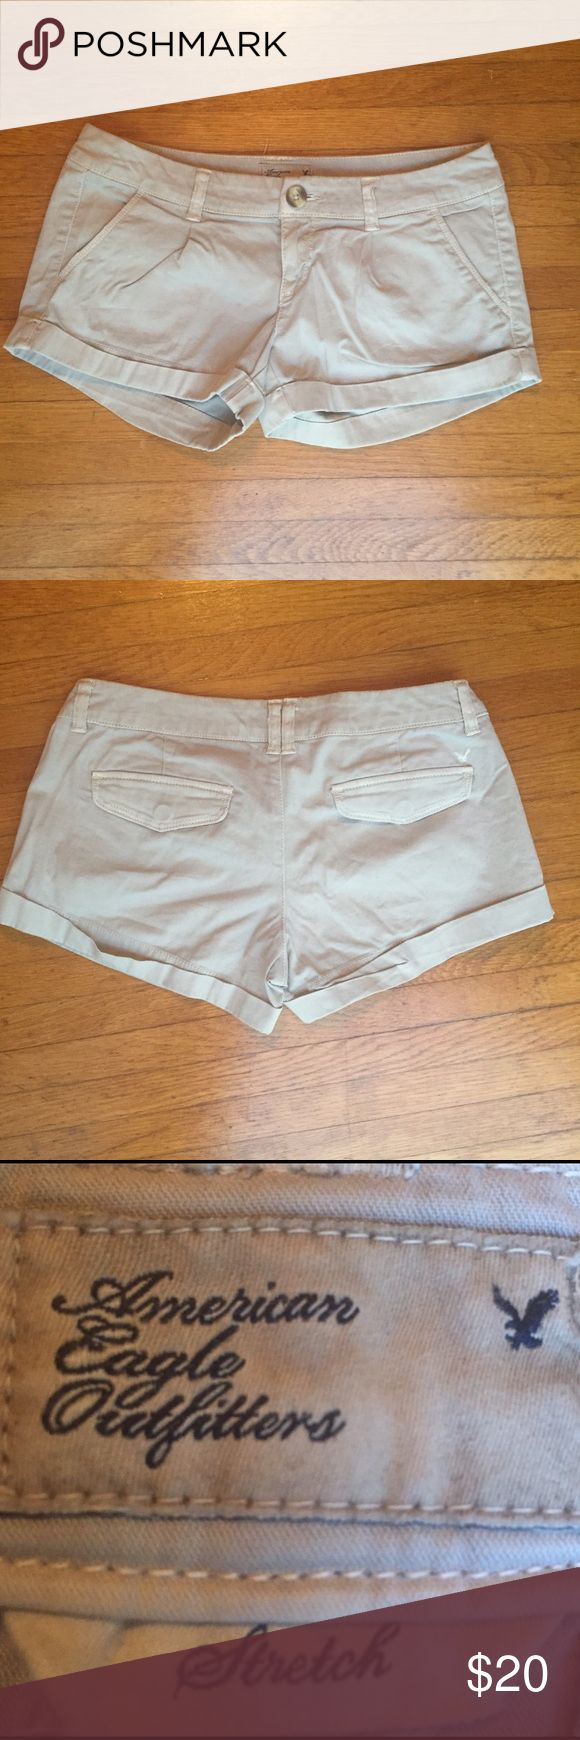 American Eagle Outfitters Beige Shorts Only worn a couple times! Great shorts that will go with anything. Stretchy and a women's size 0 American Eagle Outfitters Shorts Skorts